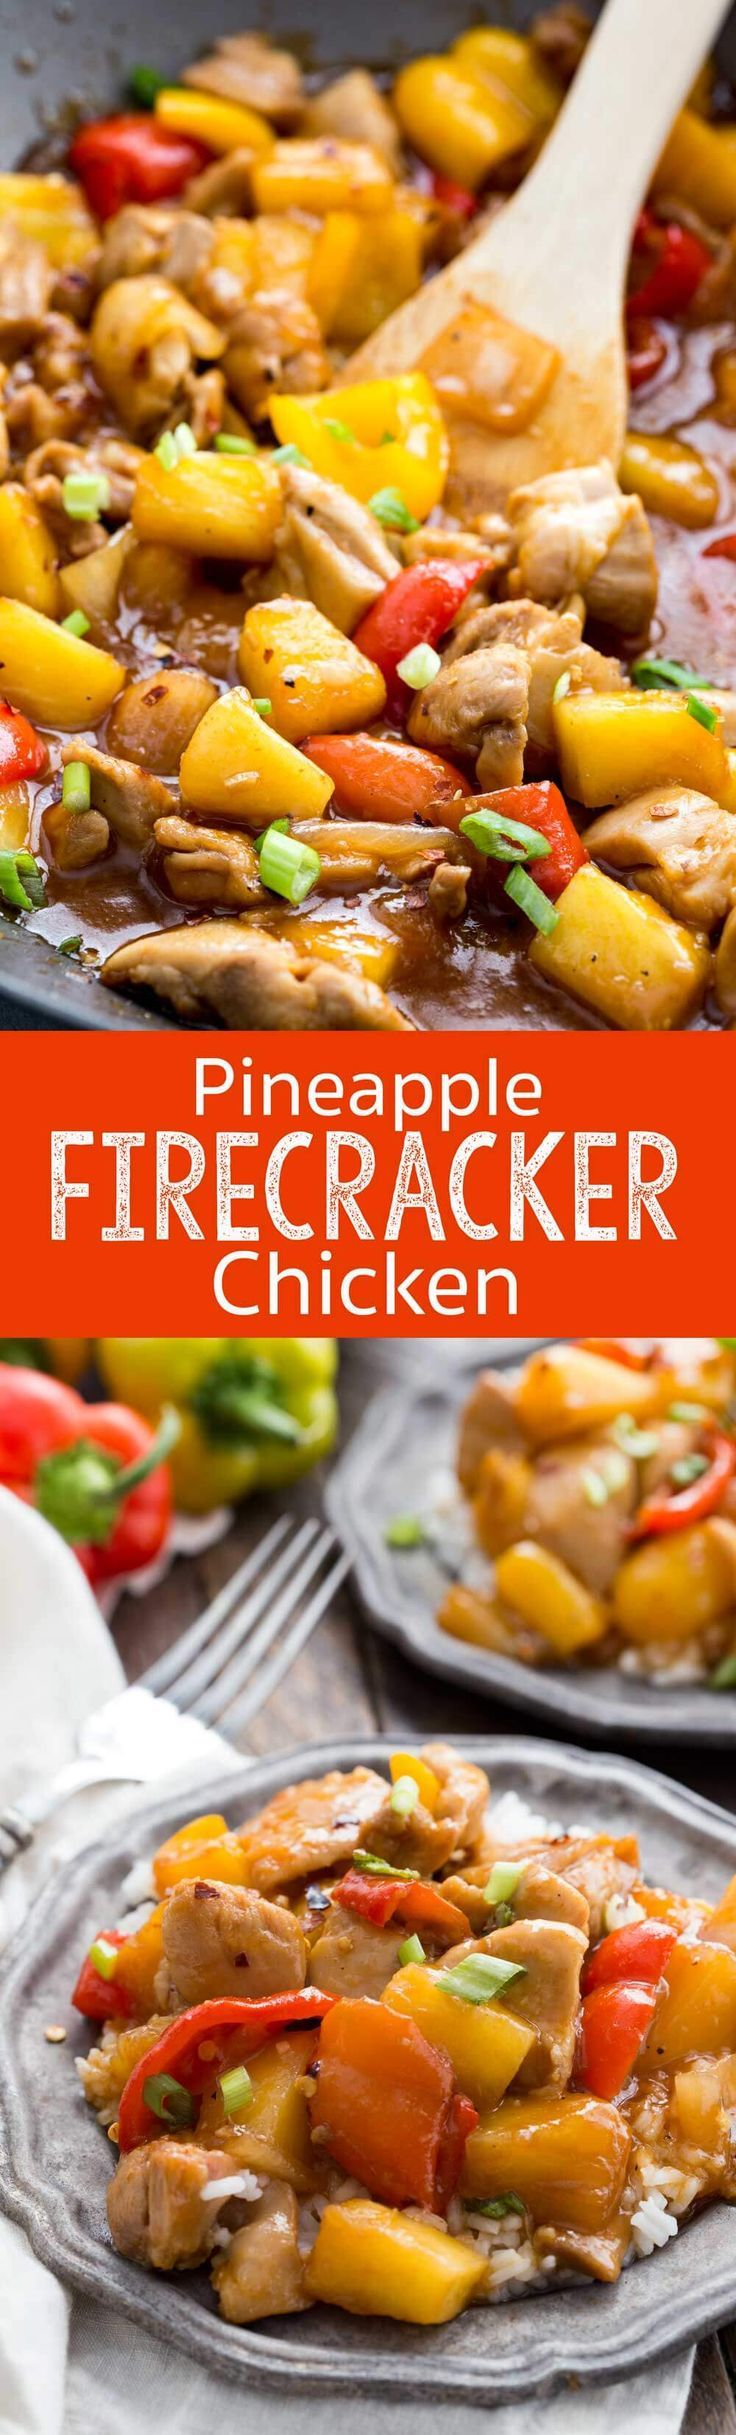 Pineapple Firecracker Chicken is a tantalizing chicken dinner with tender chicken, sweet pineapple and a finger licking sauce! #ad #DoleFrozenFruit #DisasterAverted - Eazy Peazy Mealz